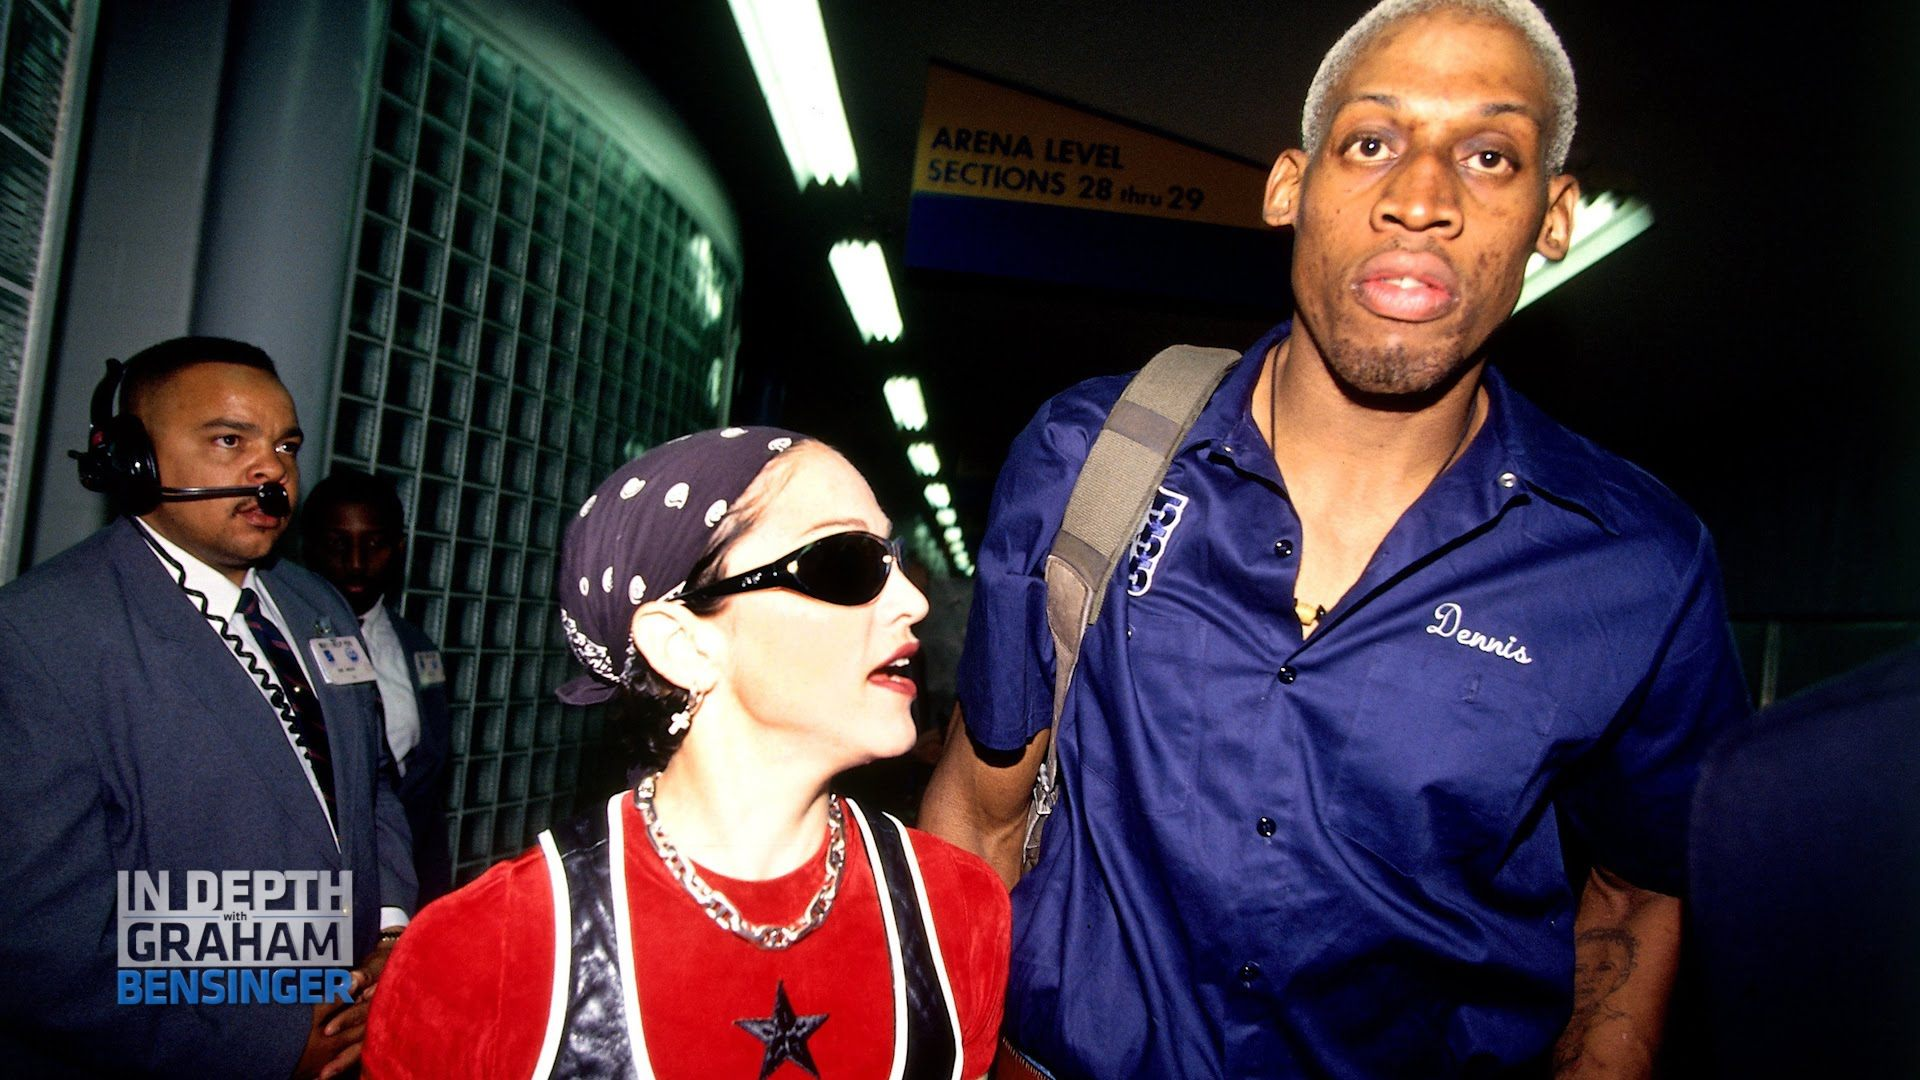 Madonna and Dennis Rodman walk together